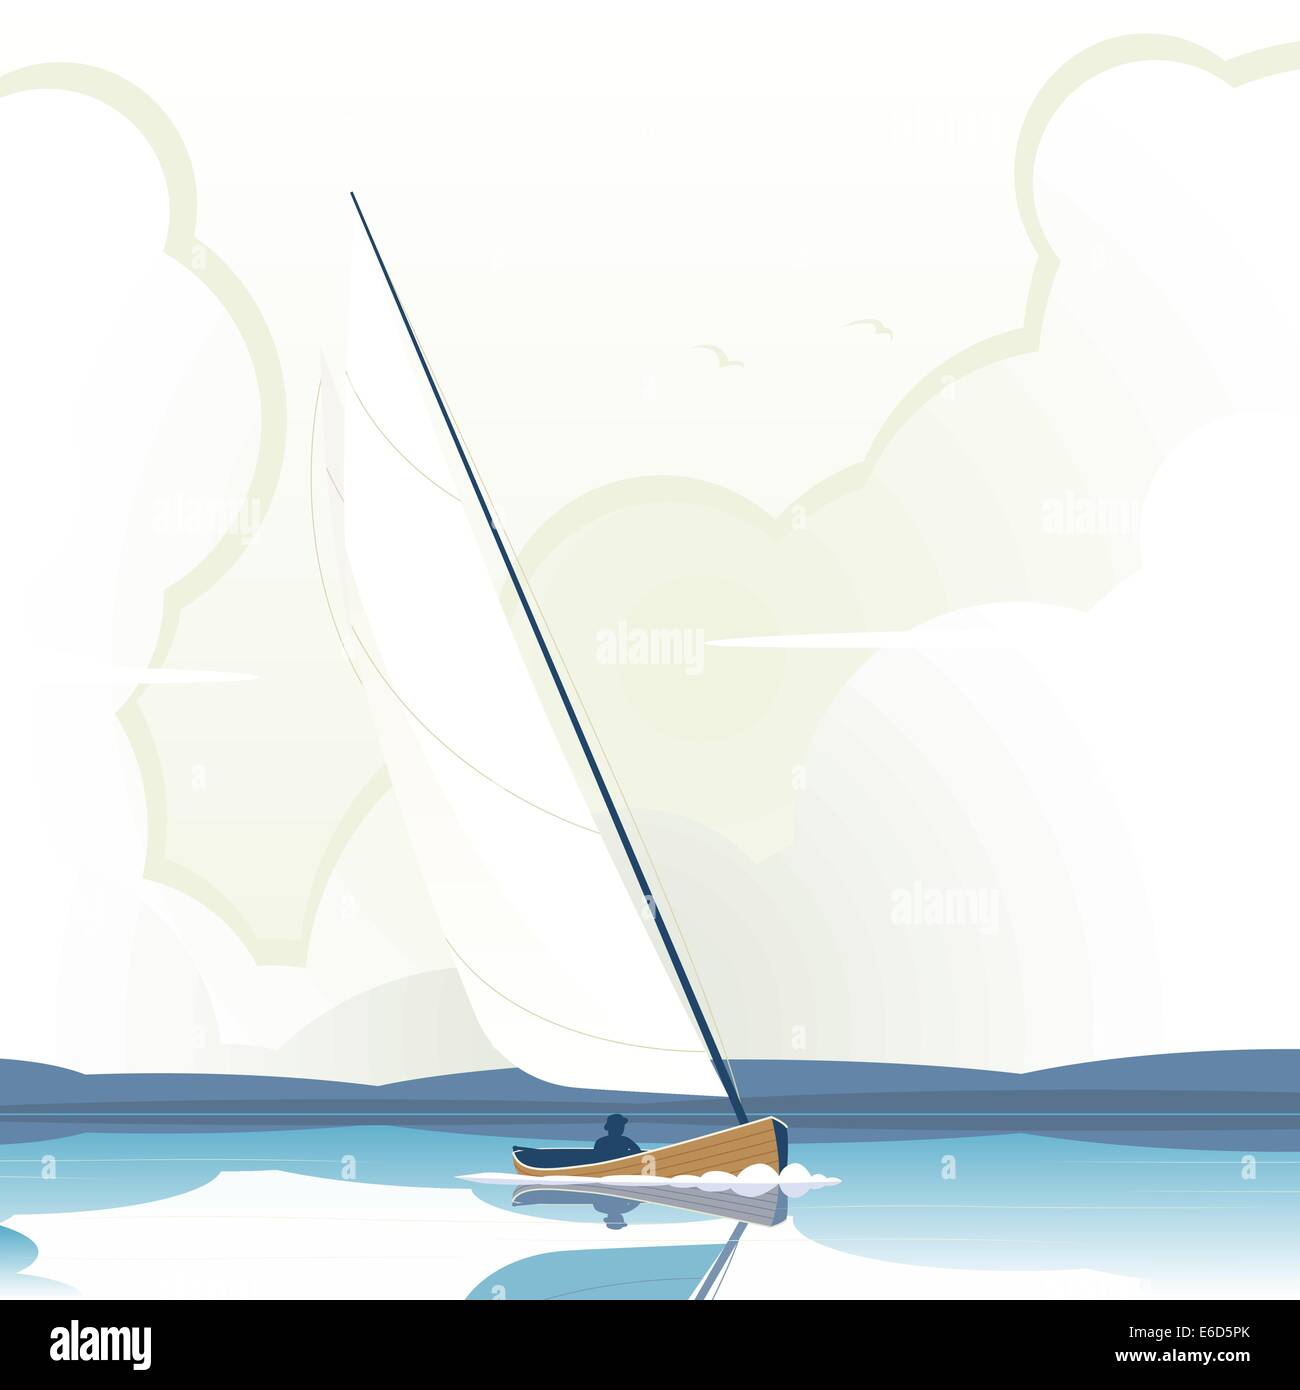 Editable vector illustration of a man sailing a yacht on calm water - Stock Vector